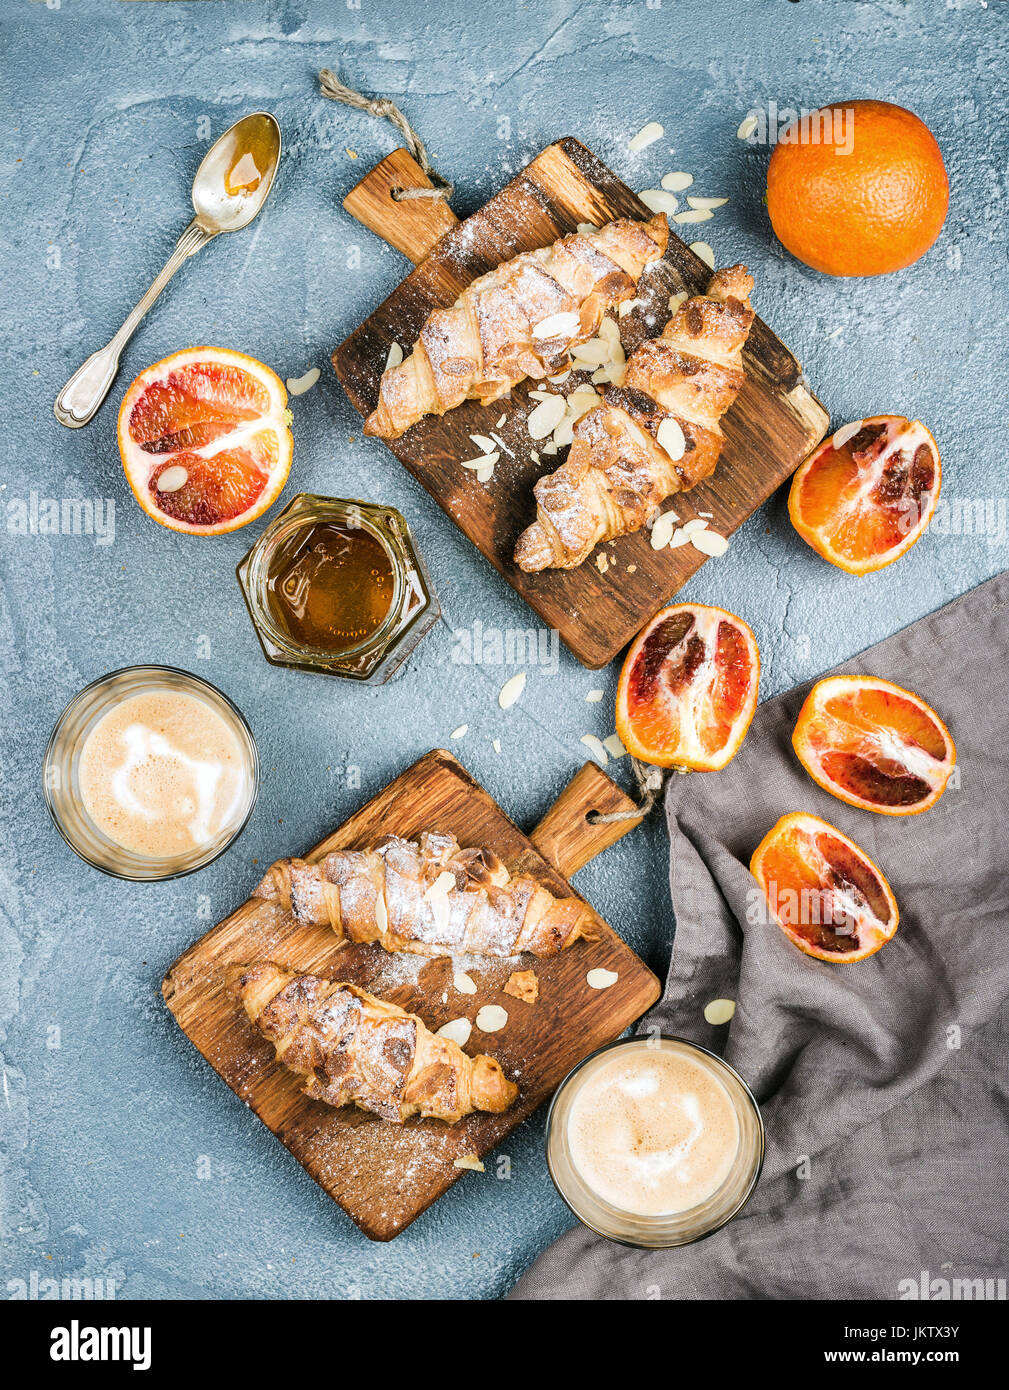 Traditional Italian style home breakfast. Latte in glasses, almond croissants on rustic wooden boards and red bloody - Stock Image